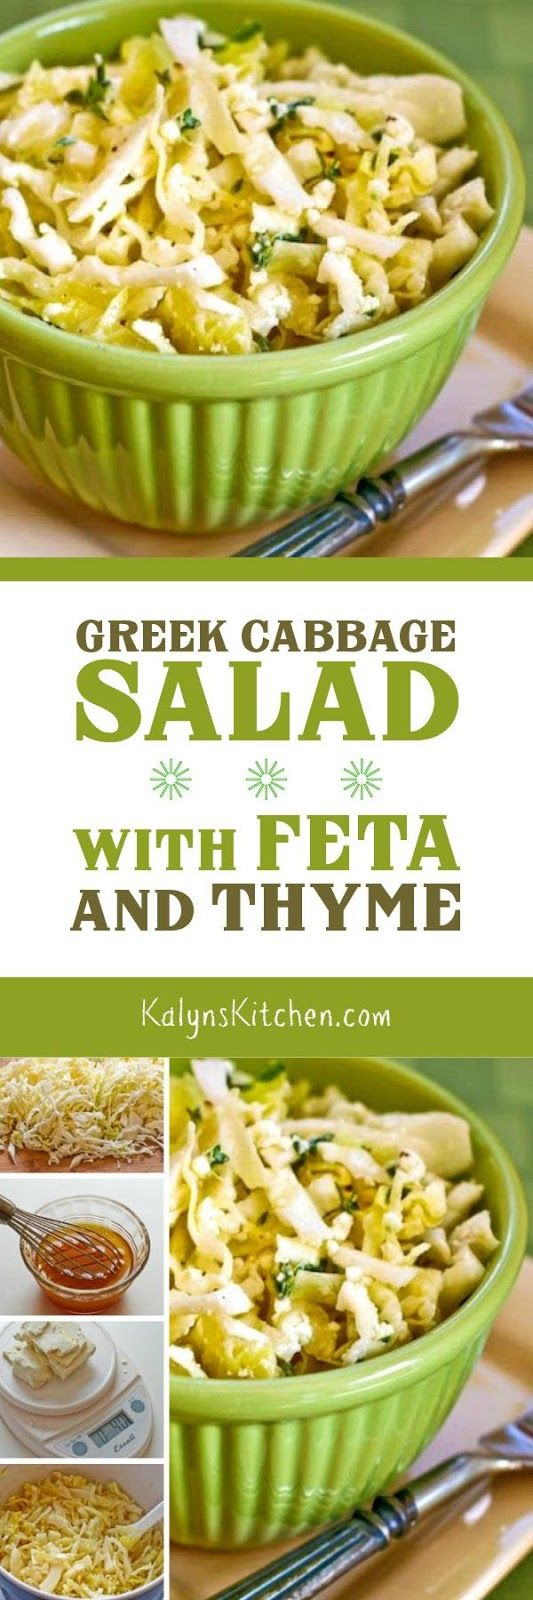 This delicious Greek Cabbage Salad with Feta and Thyme is tasty any time of year, and this salad is low-carb, gluten-free, and South Beach Diet Phase One. [found on KalynsKitchen.com]